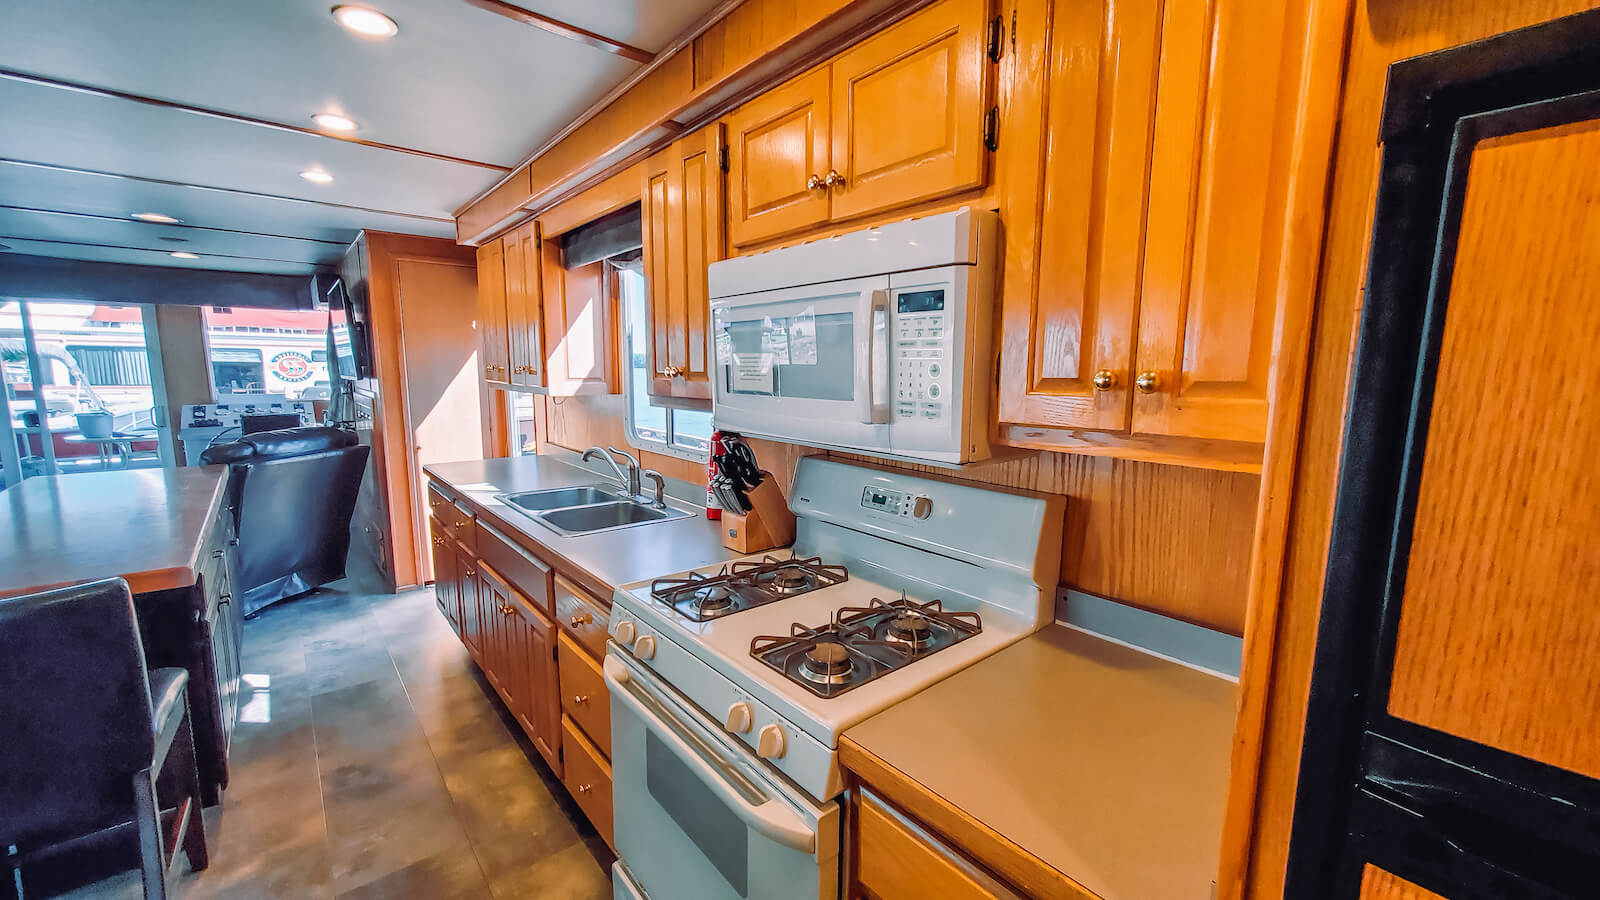 Kitchen in the S&S Rentals Riverview 62' houseboat